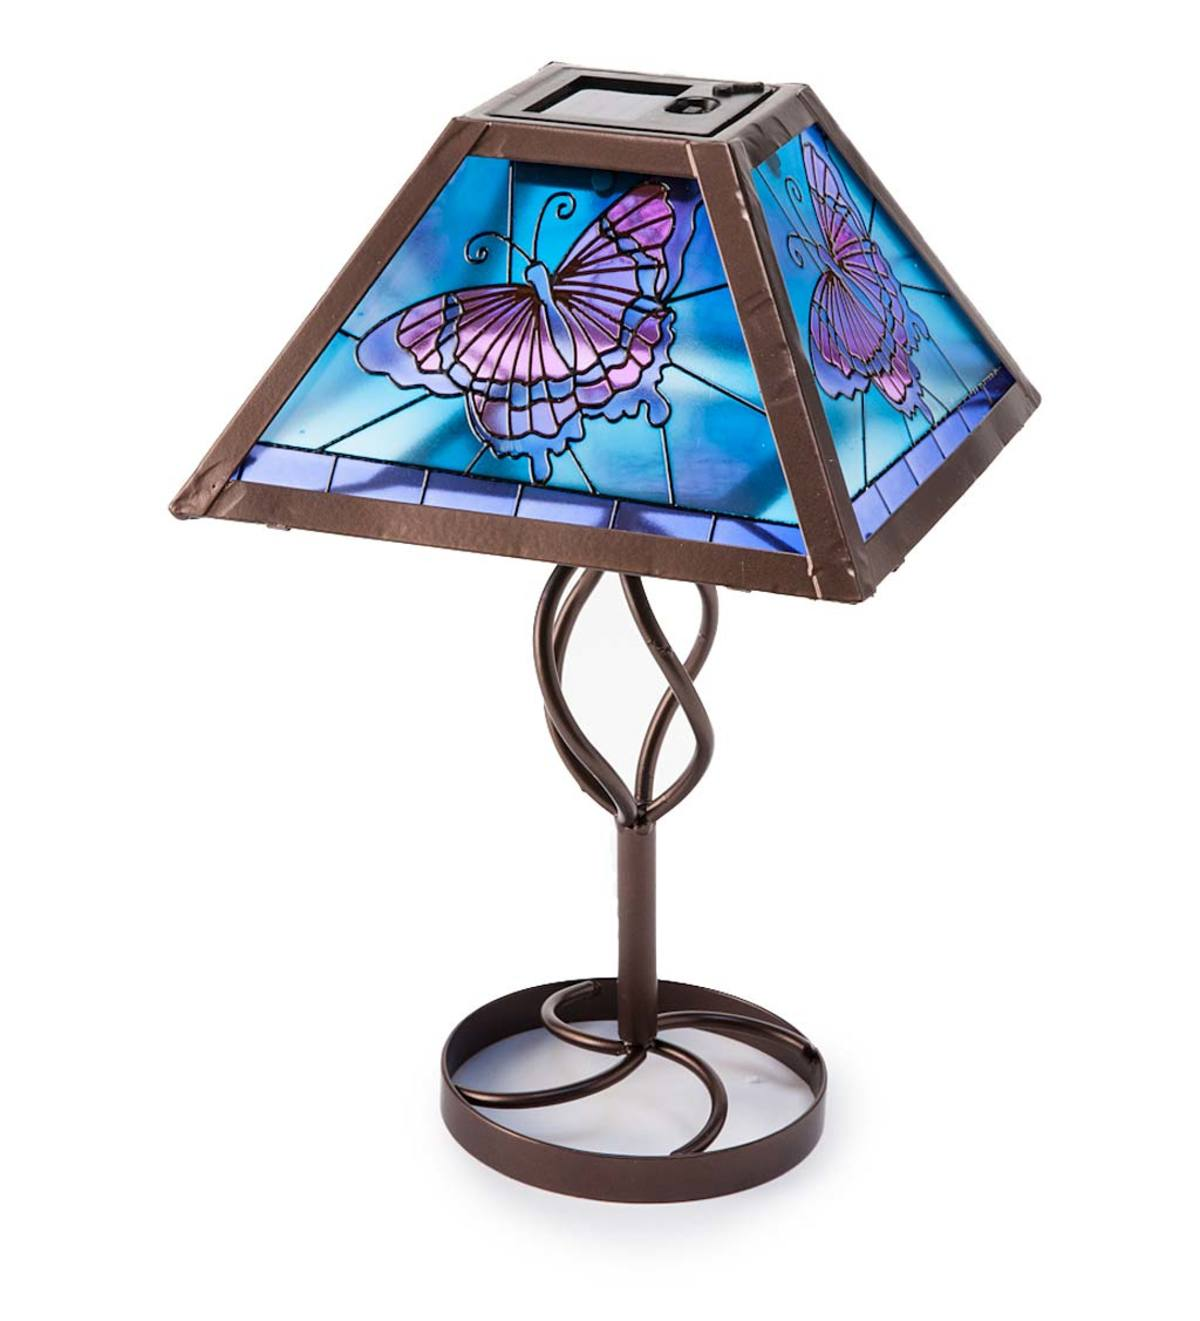 tiffany style stained glass solar outdoor table accent lamp wind metal butterfly adjustable coffee ikea barrel diy square brown leather ott mcm side mirrored tables quilted runner